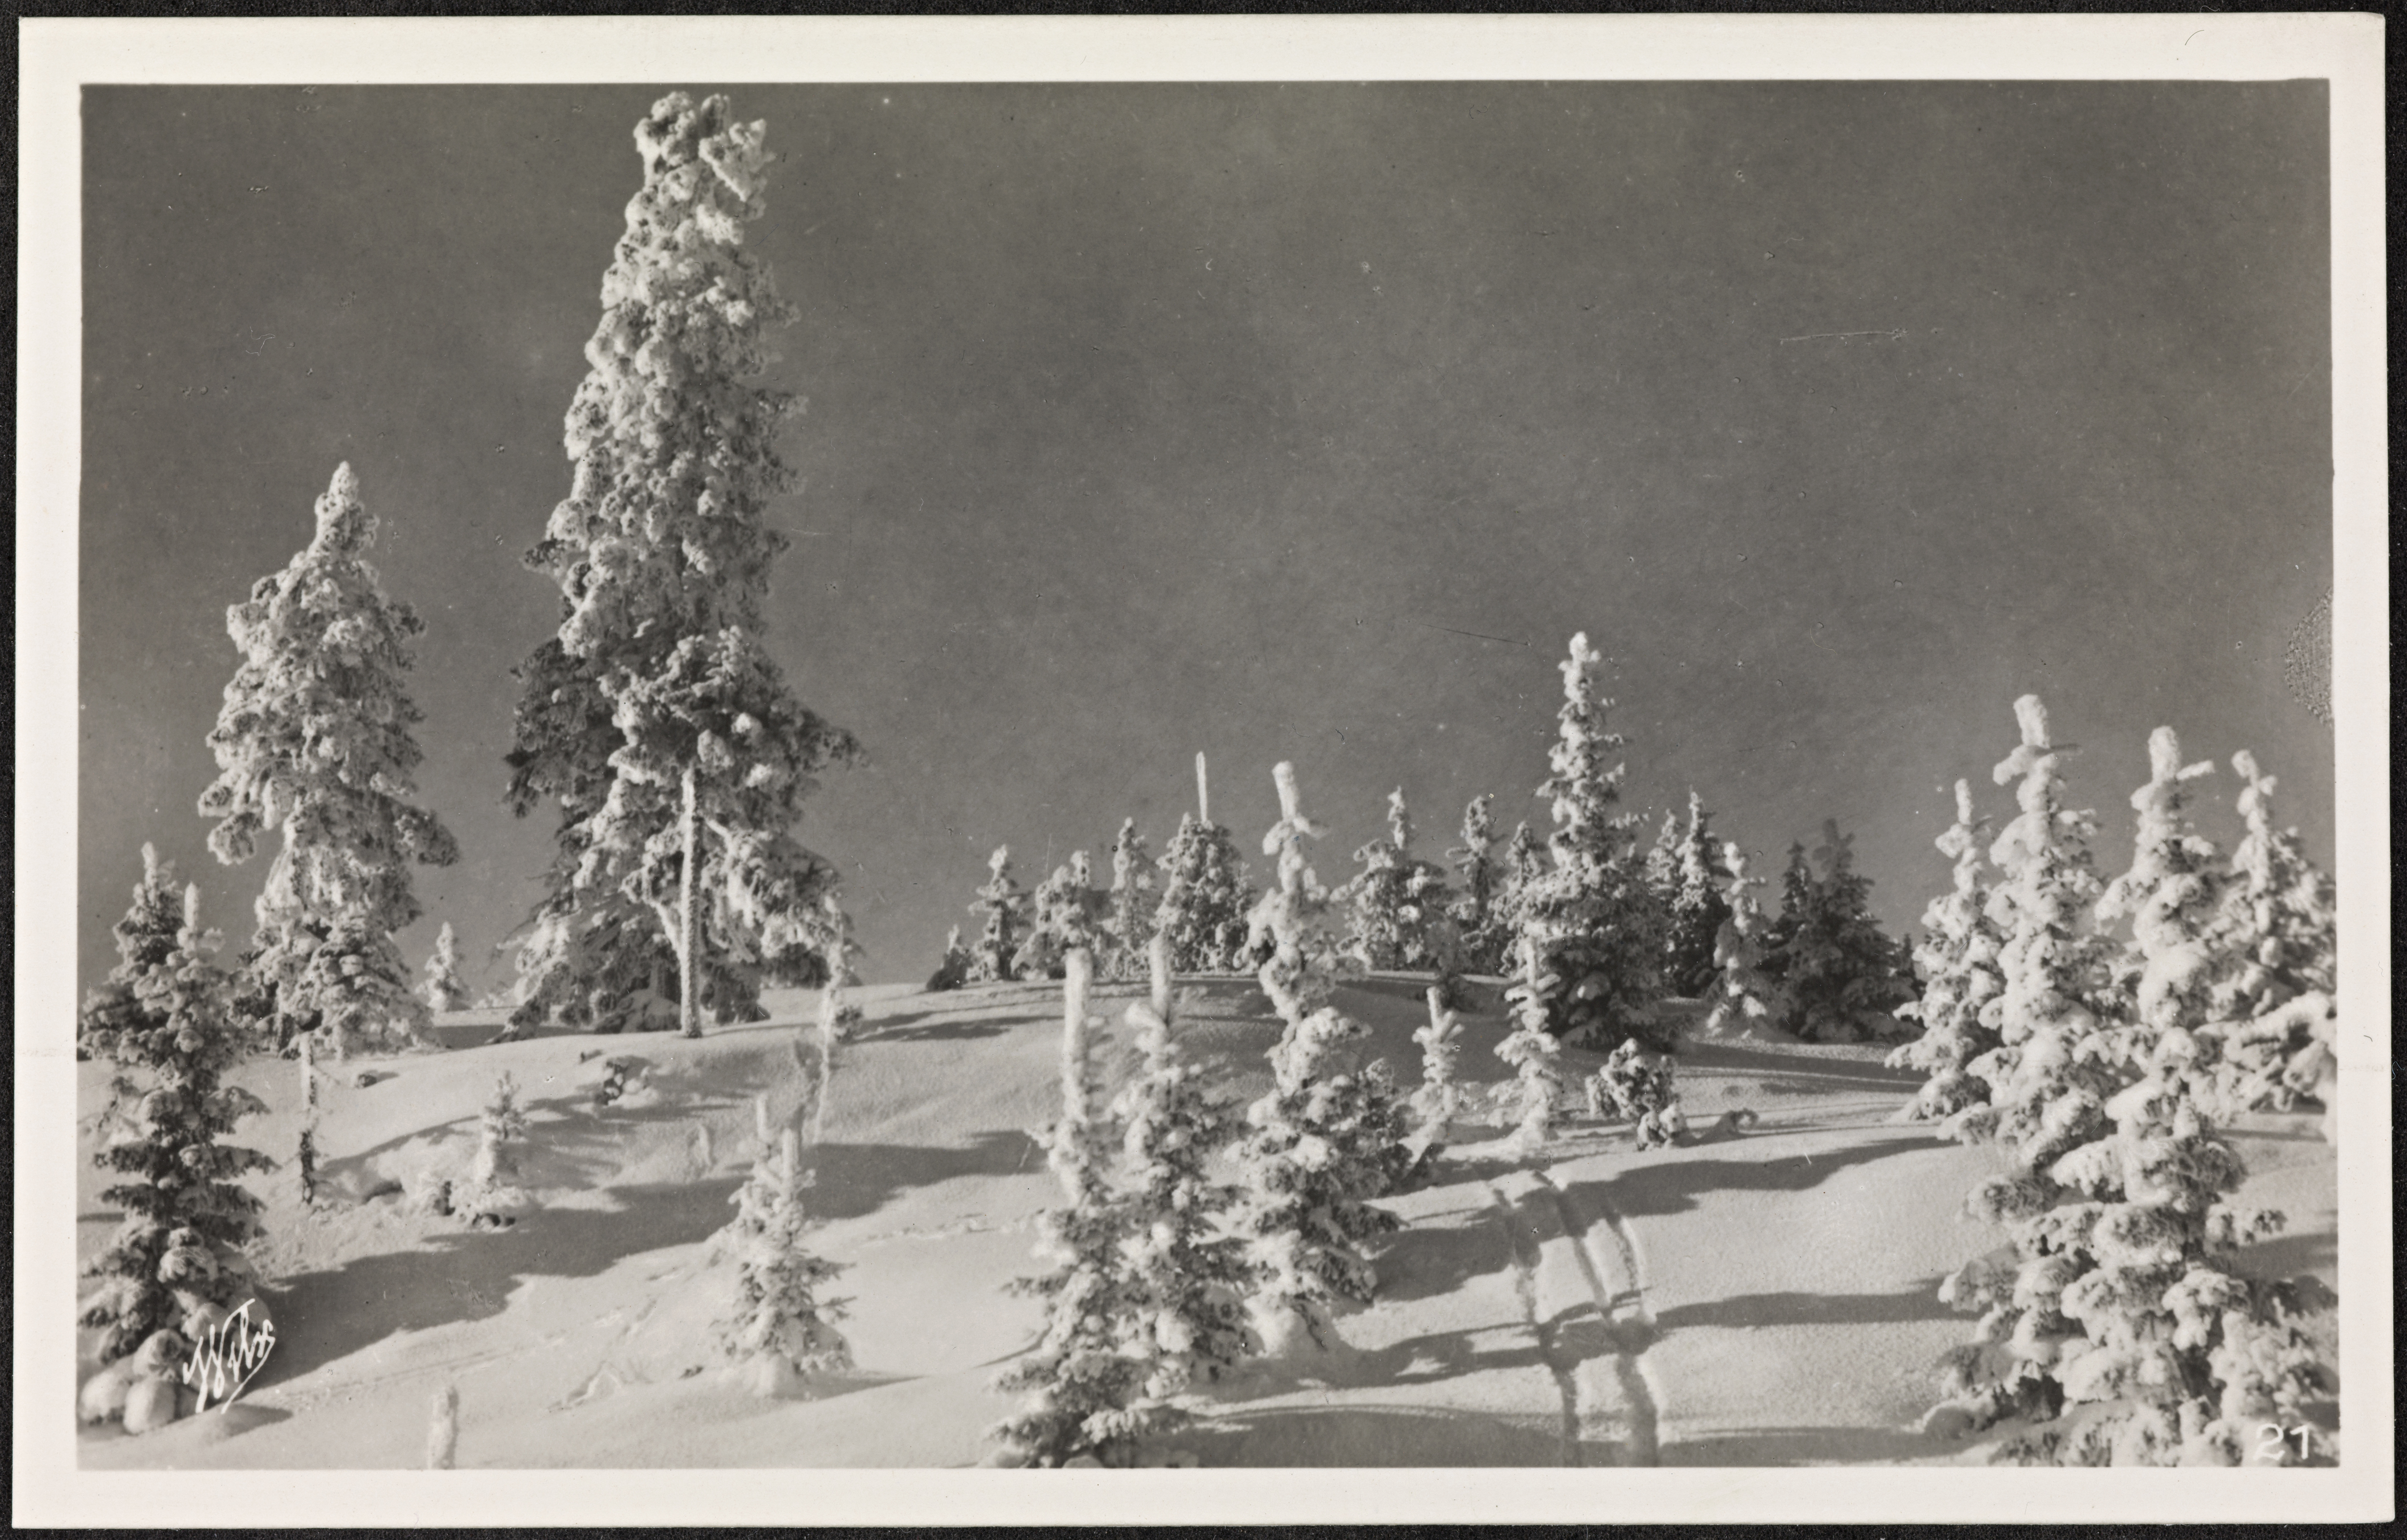 A black-and-white photograph of a snowy slope with snow-covered trees of different heights